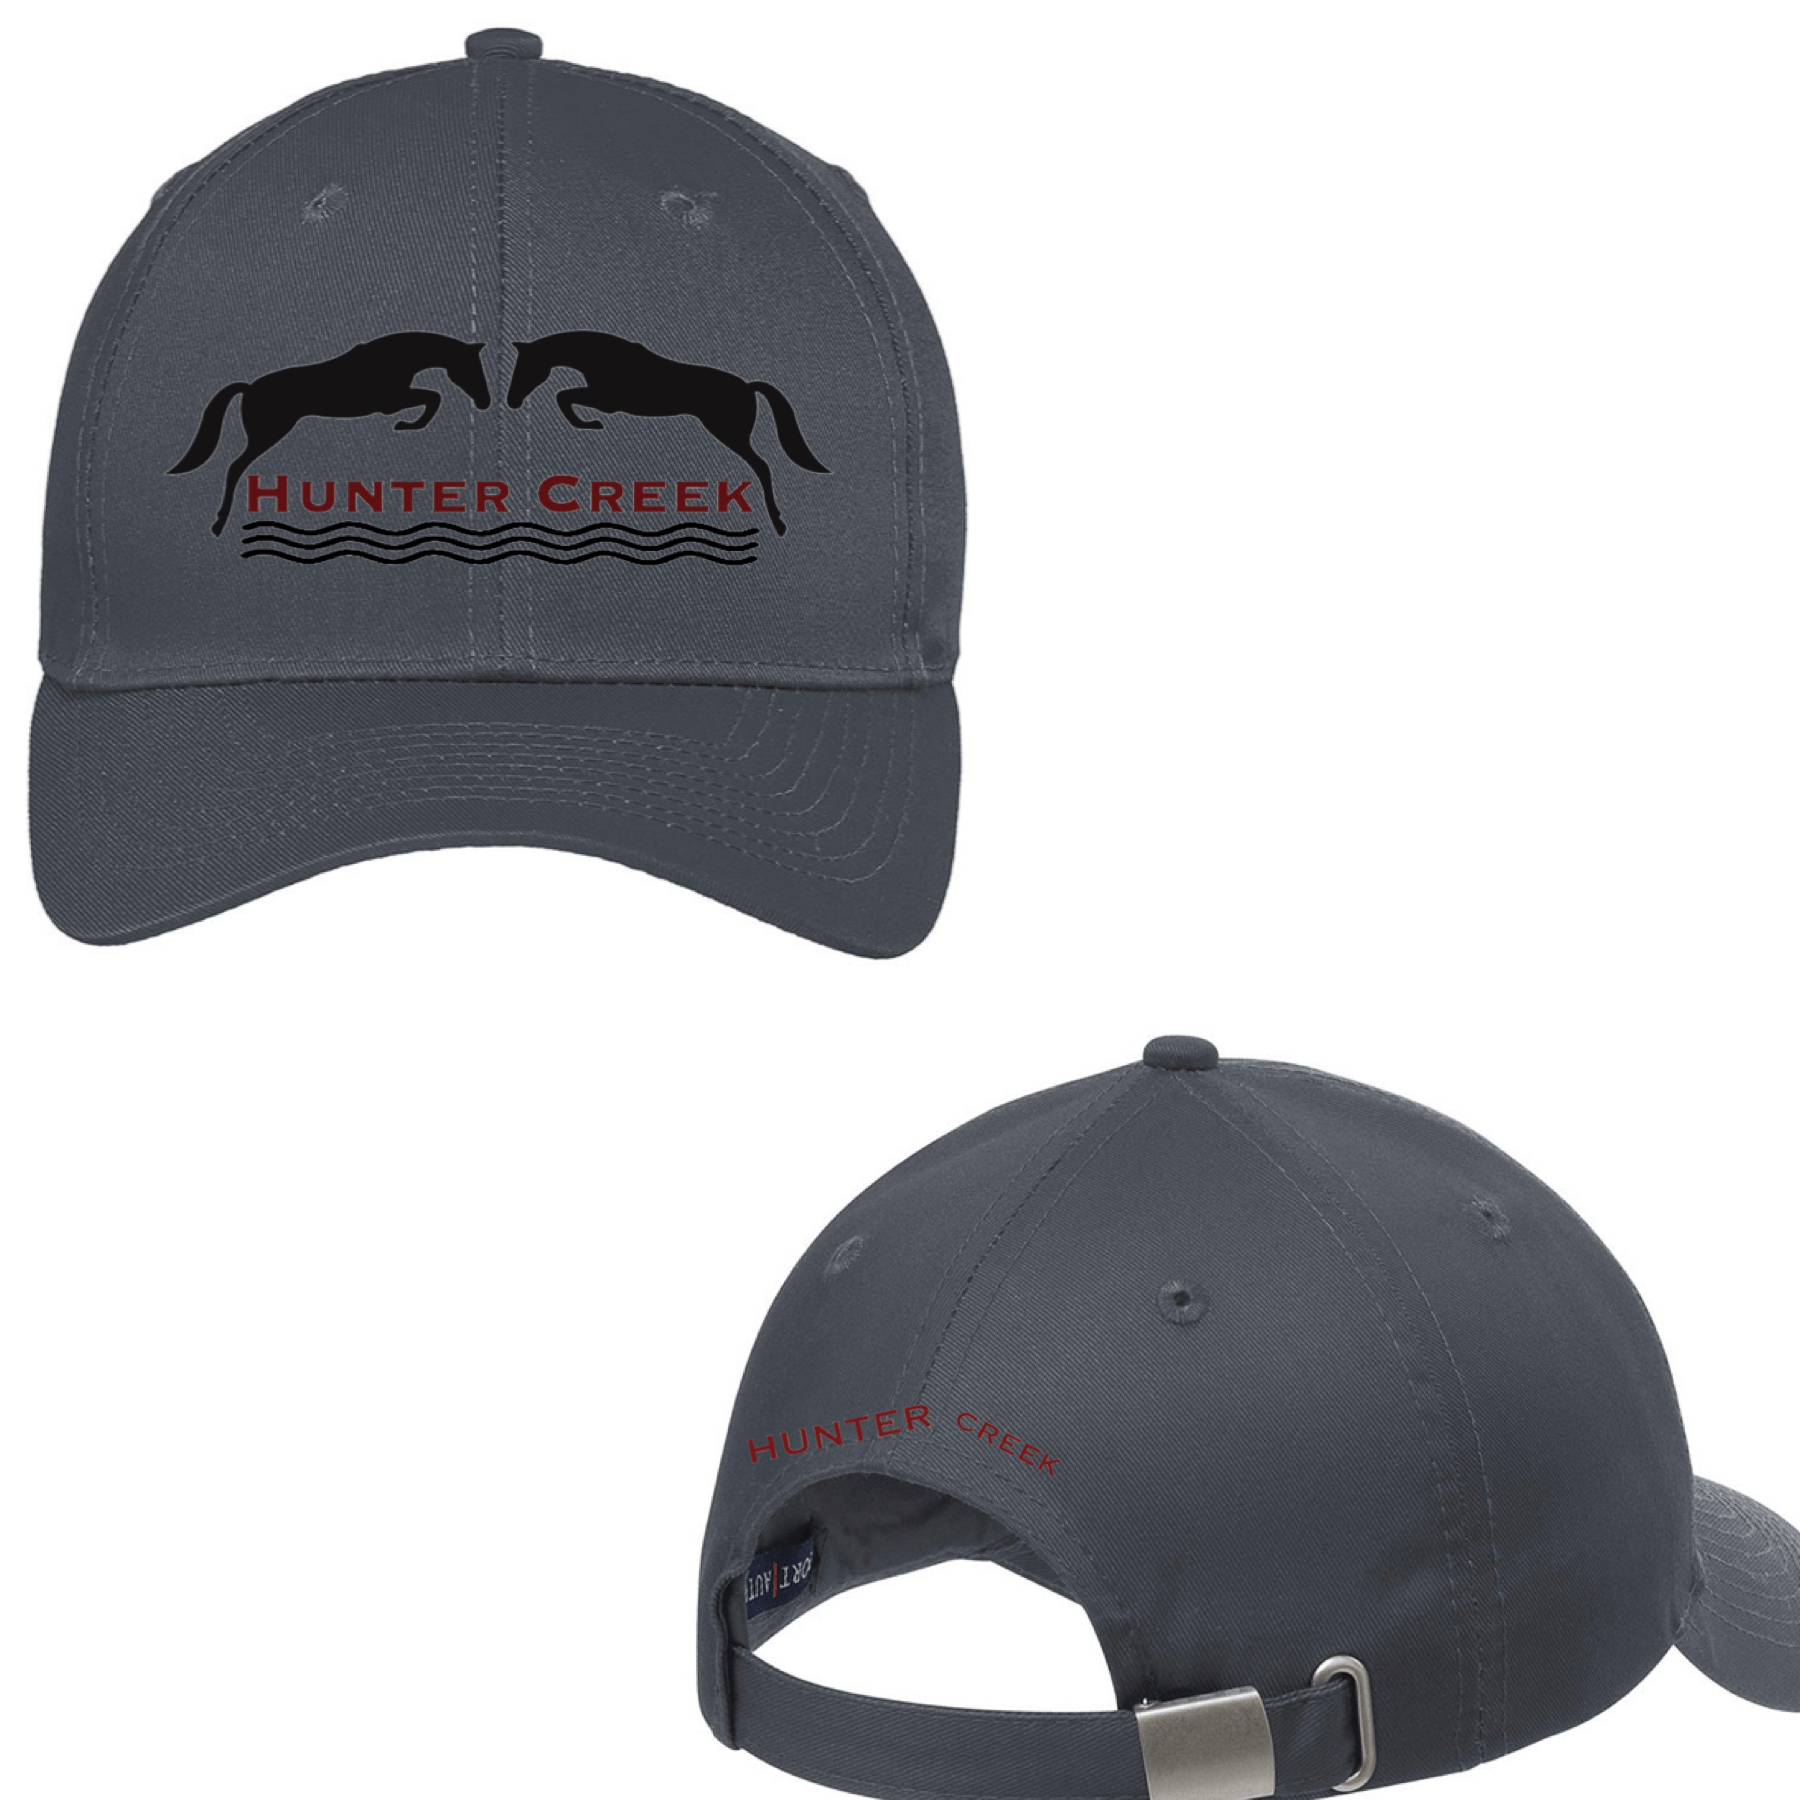 Equestrian Team Apparel Custom Team Hats Grey Hunter Creek baseball cap equestrian team apparel online tack store mobile tack store custom farm apparel custom show stable clothing equestrian lifestyle horse show clothing riding clothes horses equestrian tack store